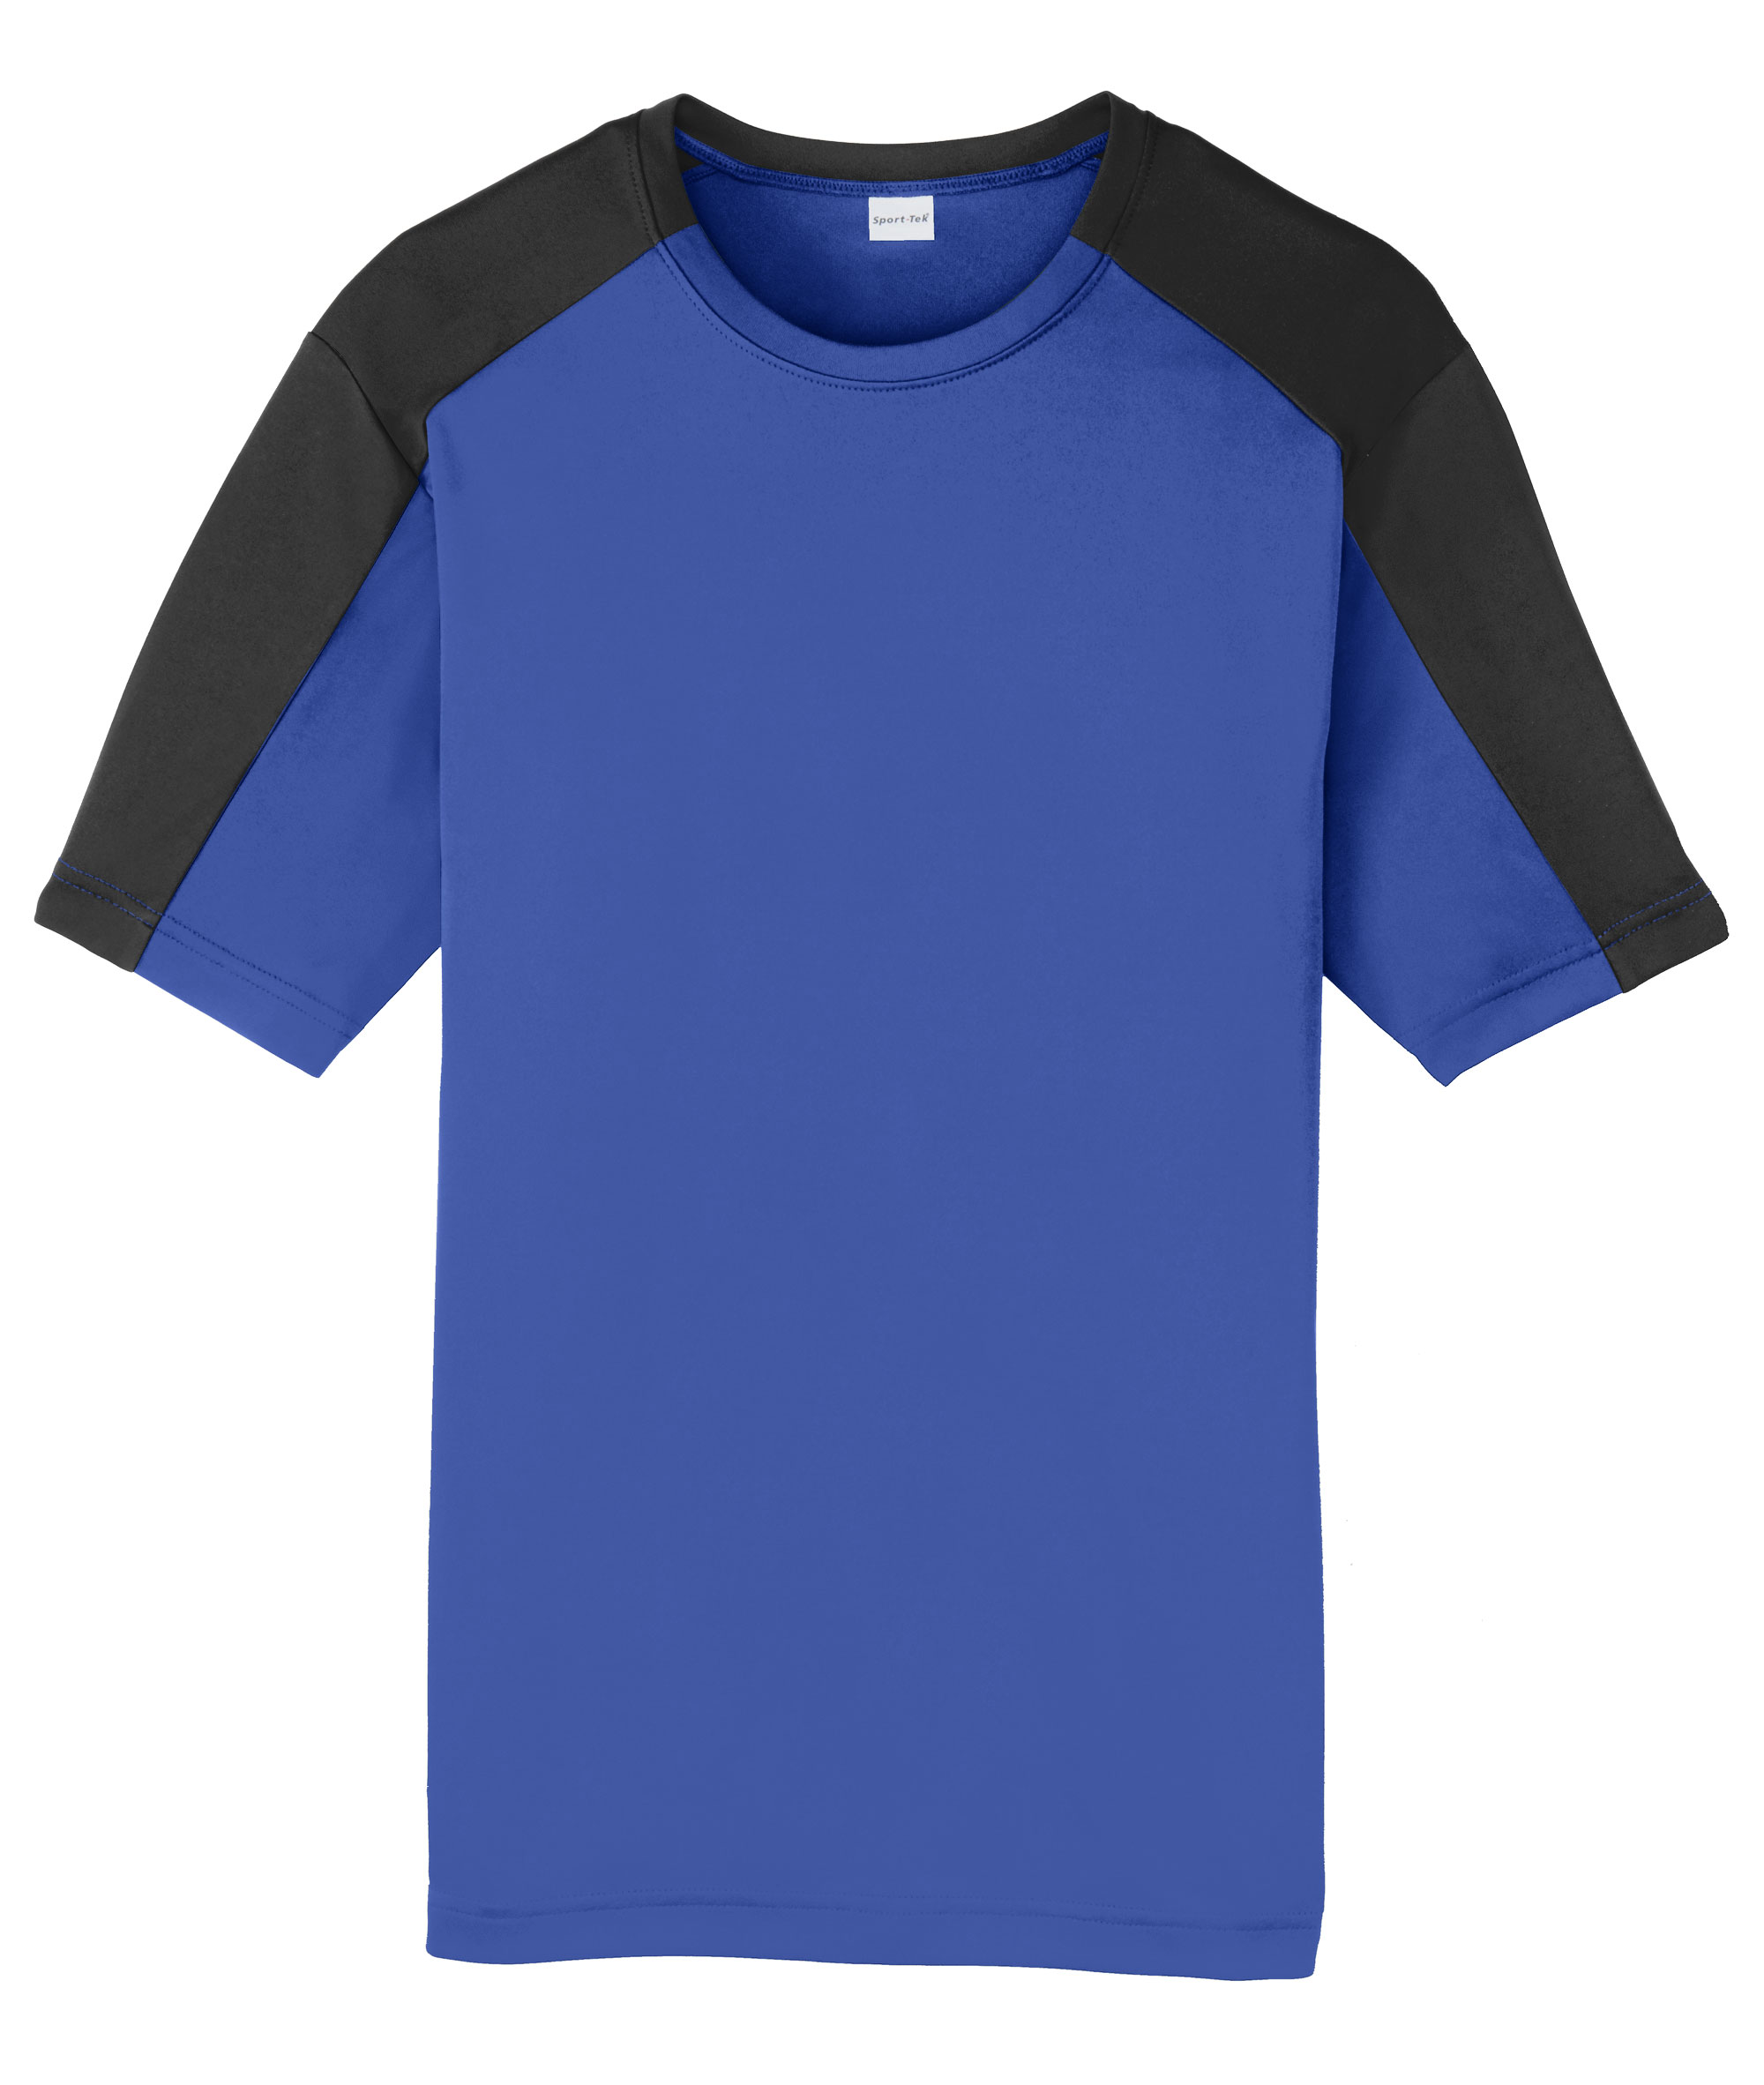 Adult Competitor Sleeve-Blocked Tee